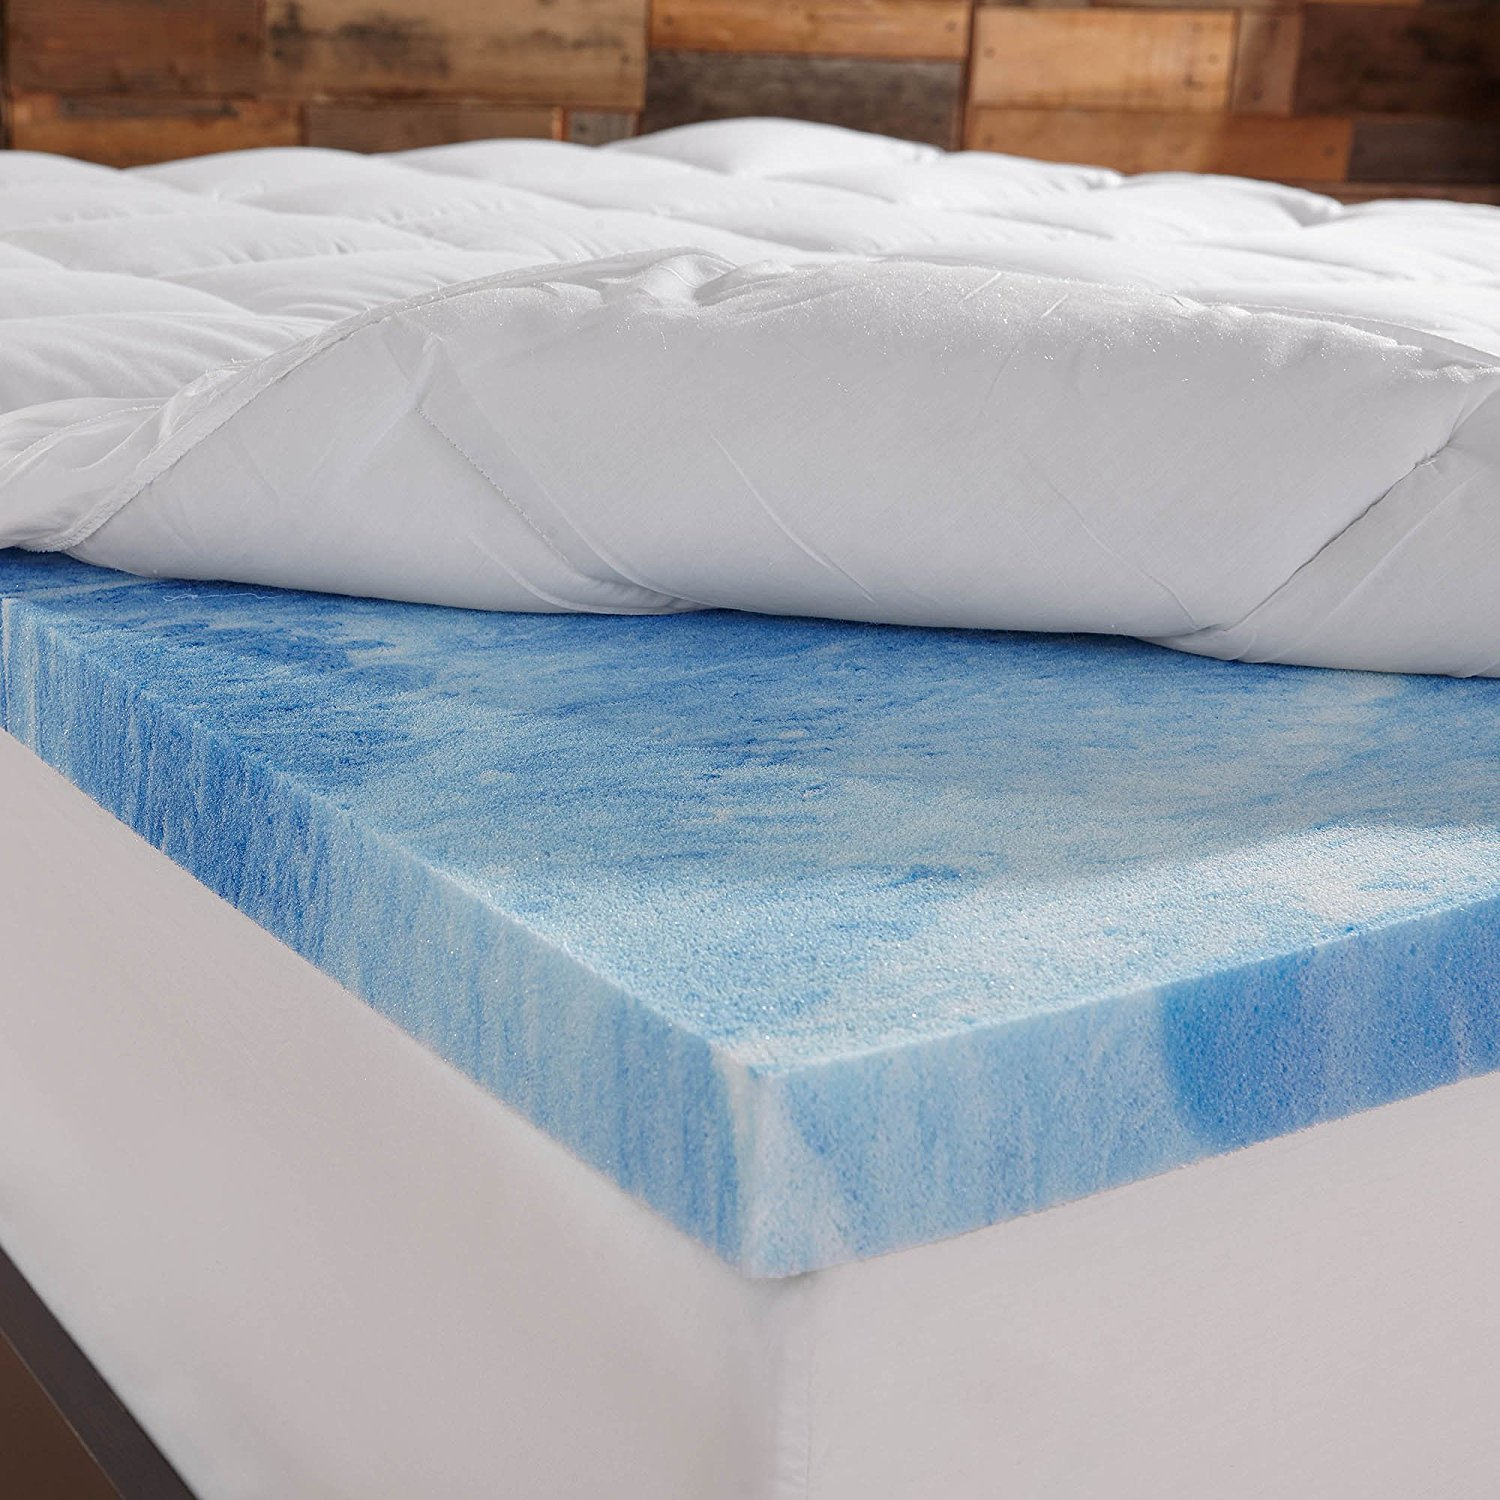 memory foam mattress topper - Sleep Innovations 4-Inch Dual Layer Mattress Topper